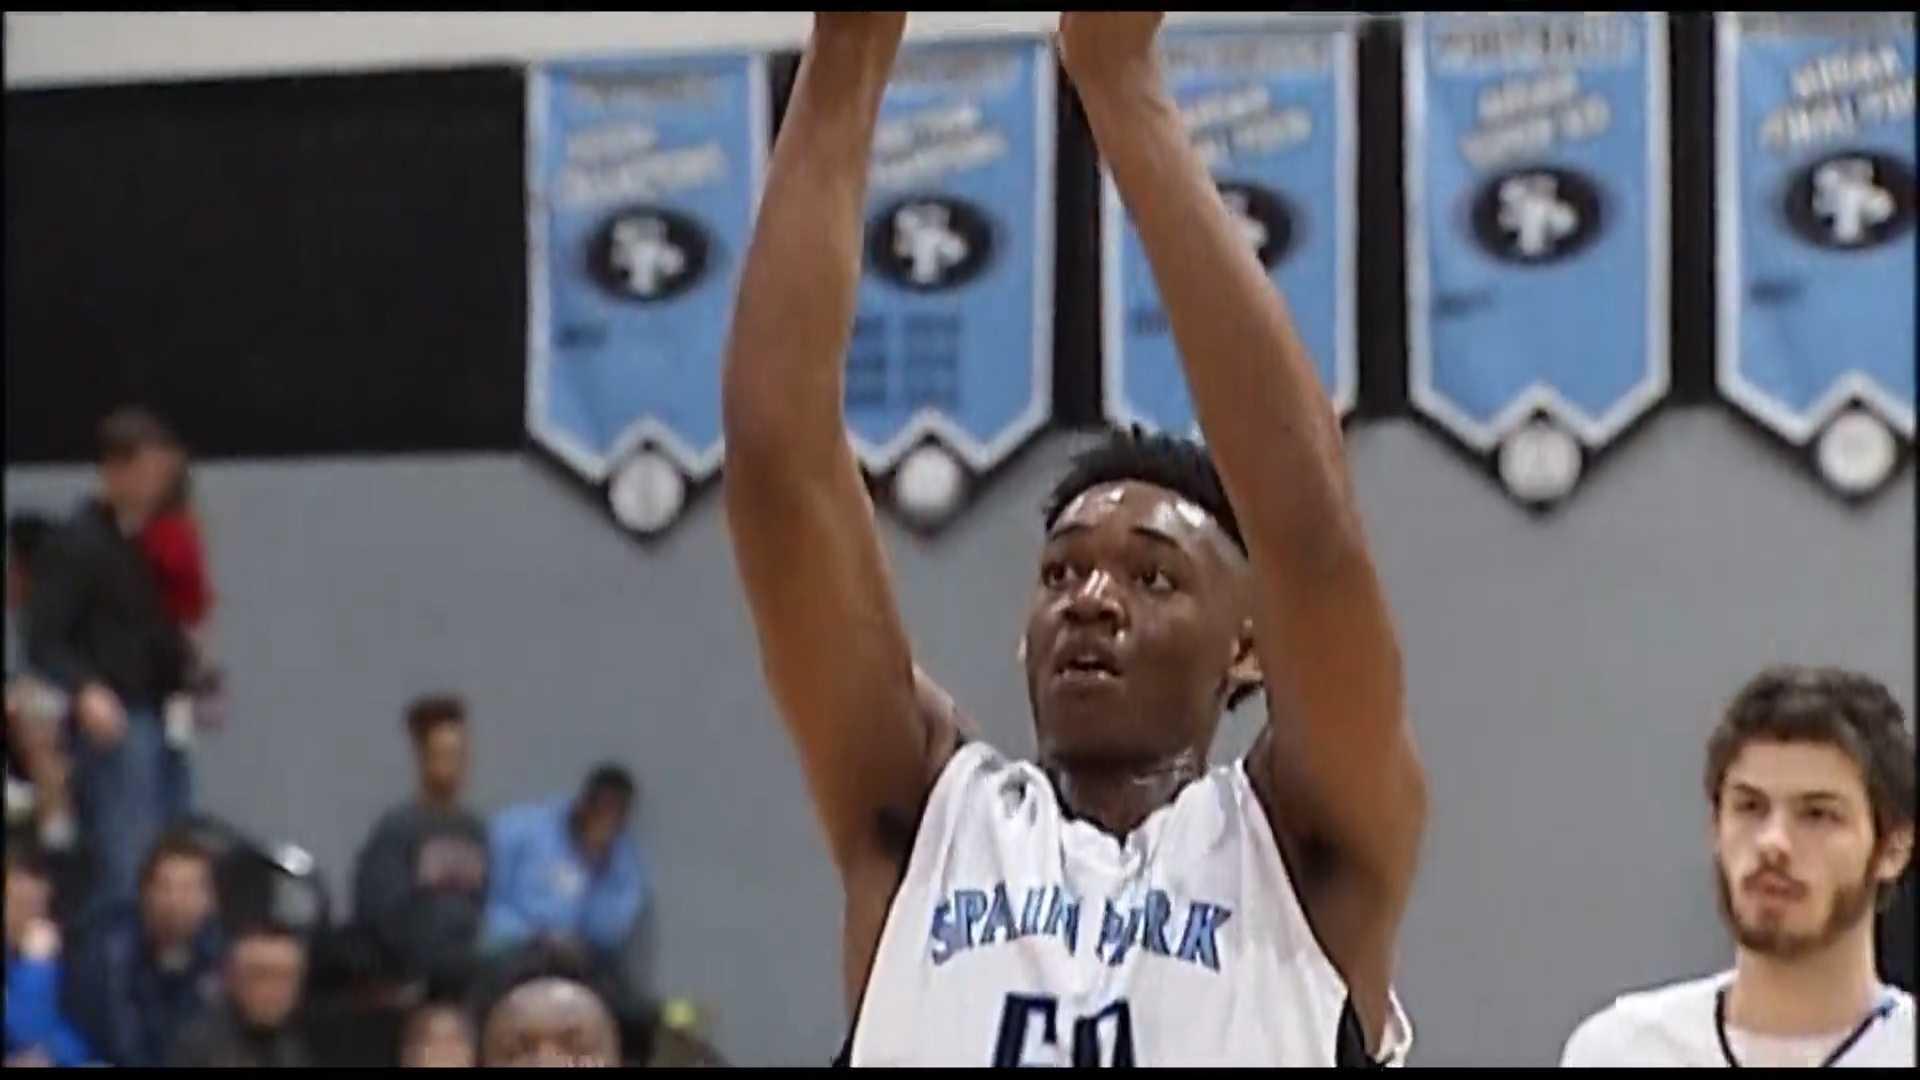 5P AUSTIN WILEY-KEYWALL VIDEO_WVTM6218_174.mp4.00_00_04_25.Still001.jpg